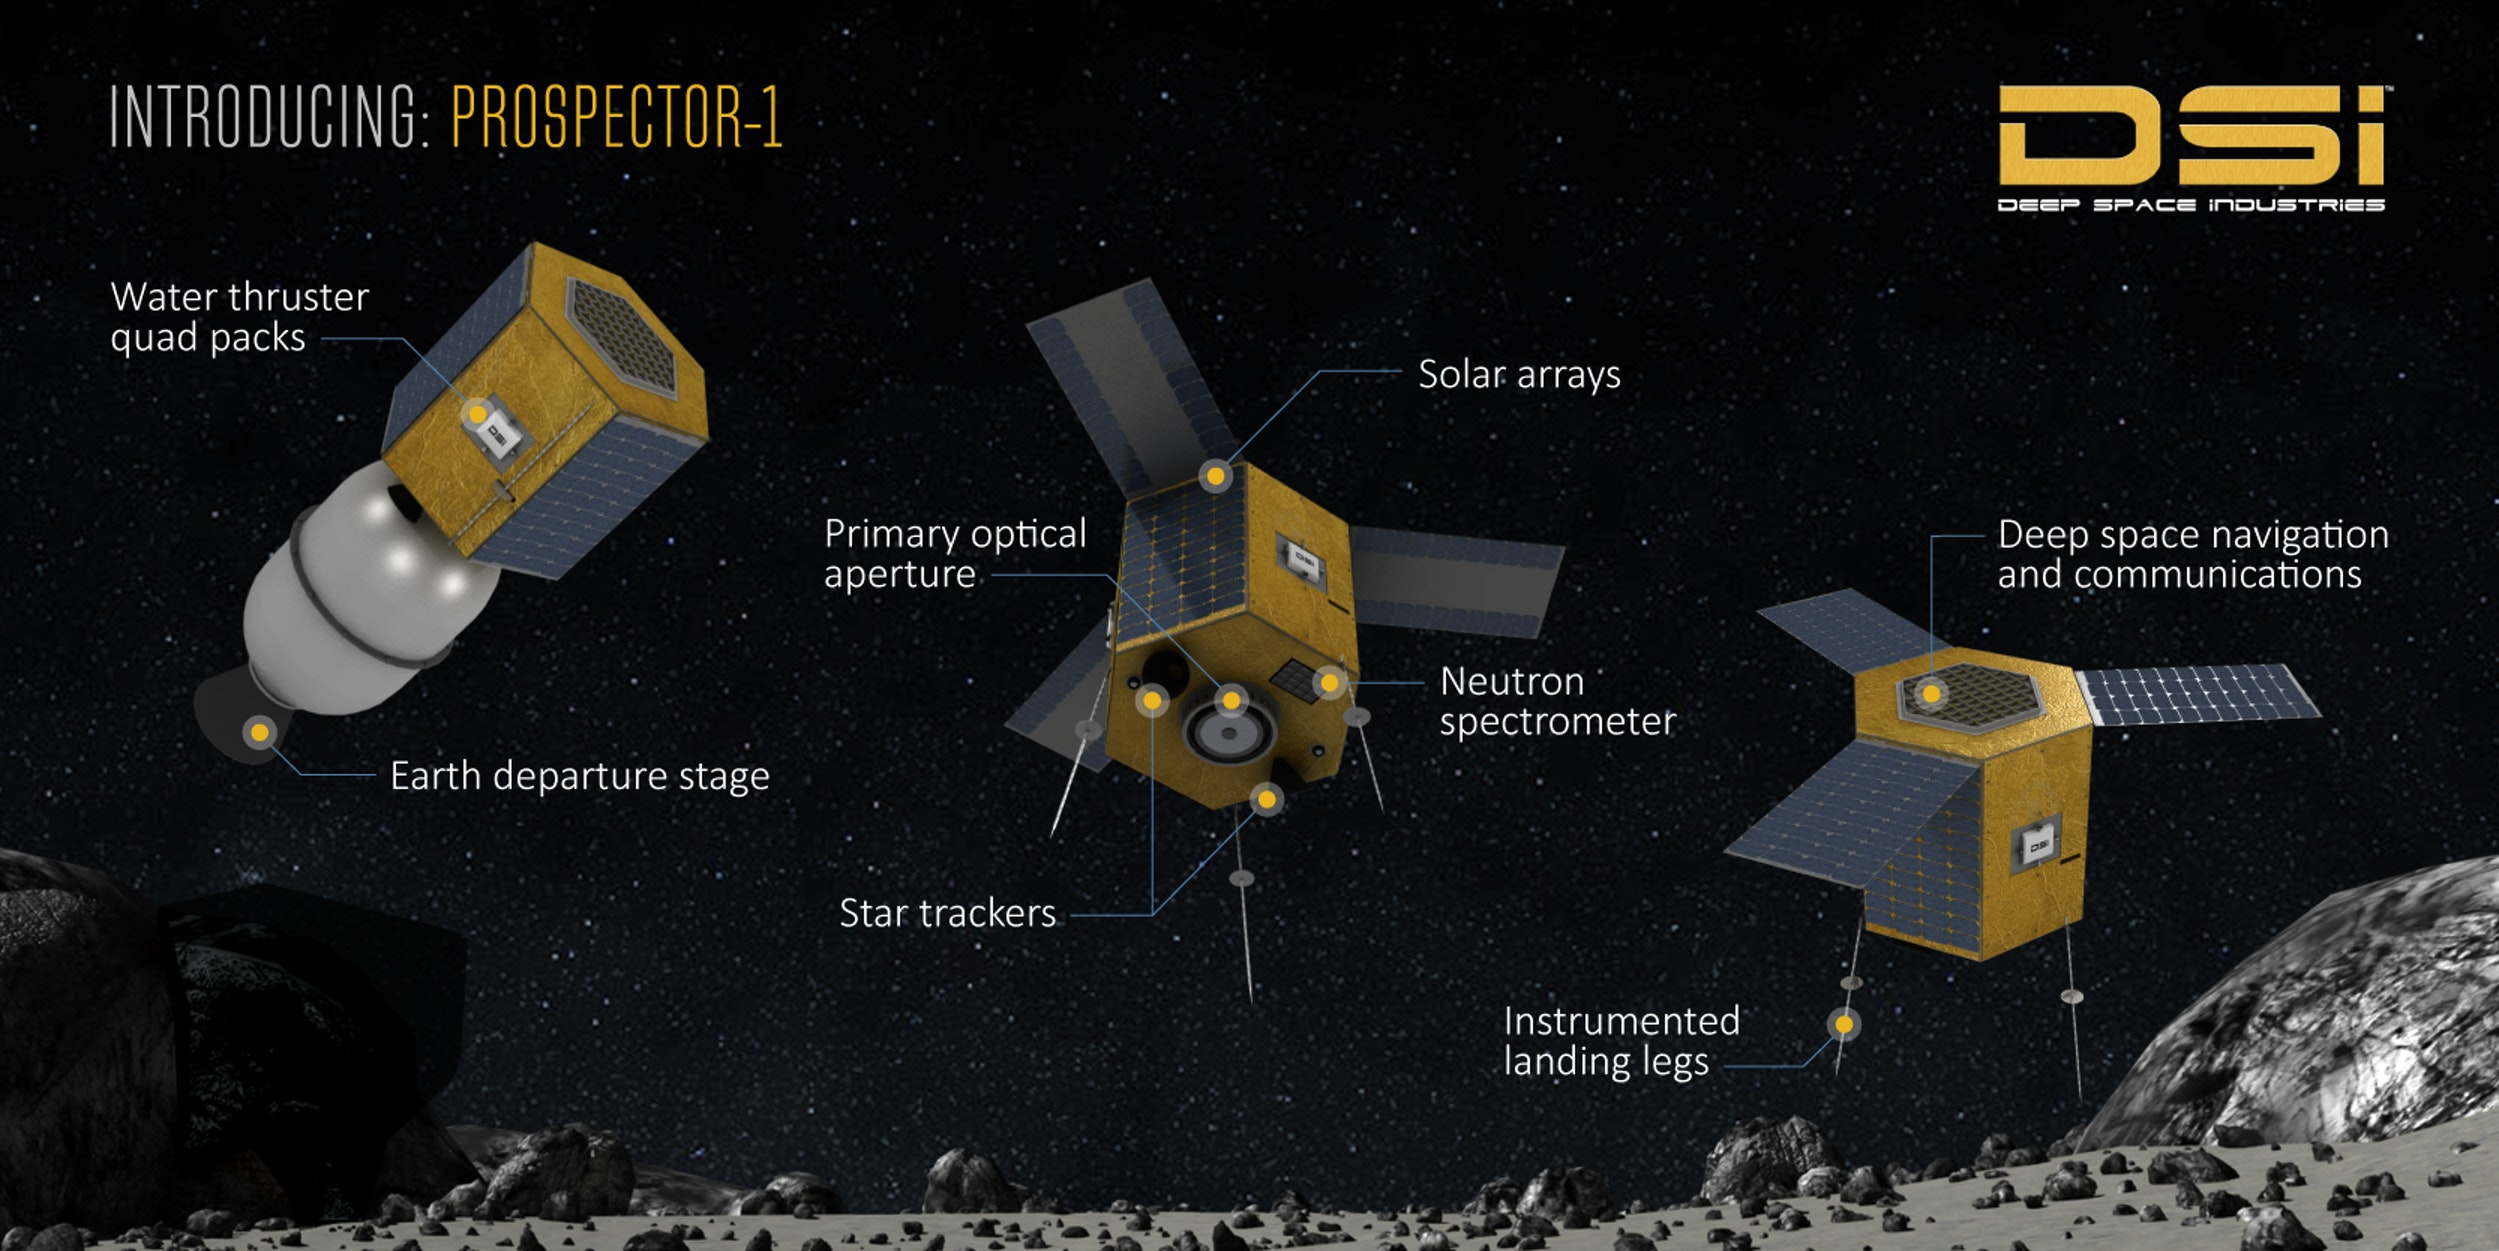 An outline of the Prospector-1 mission.